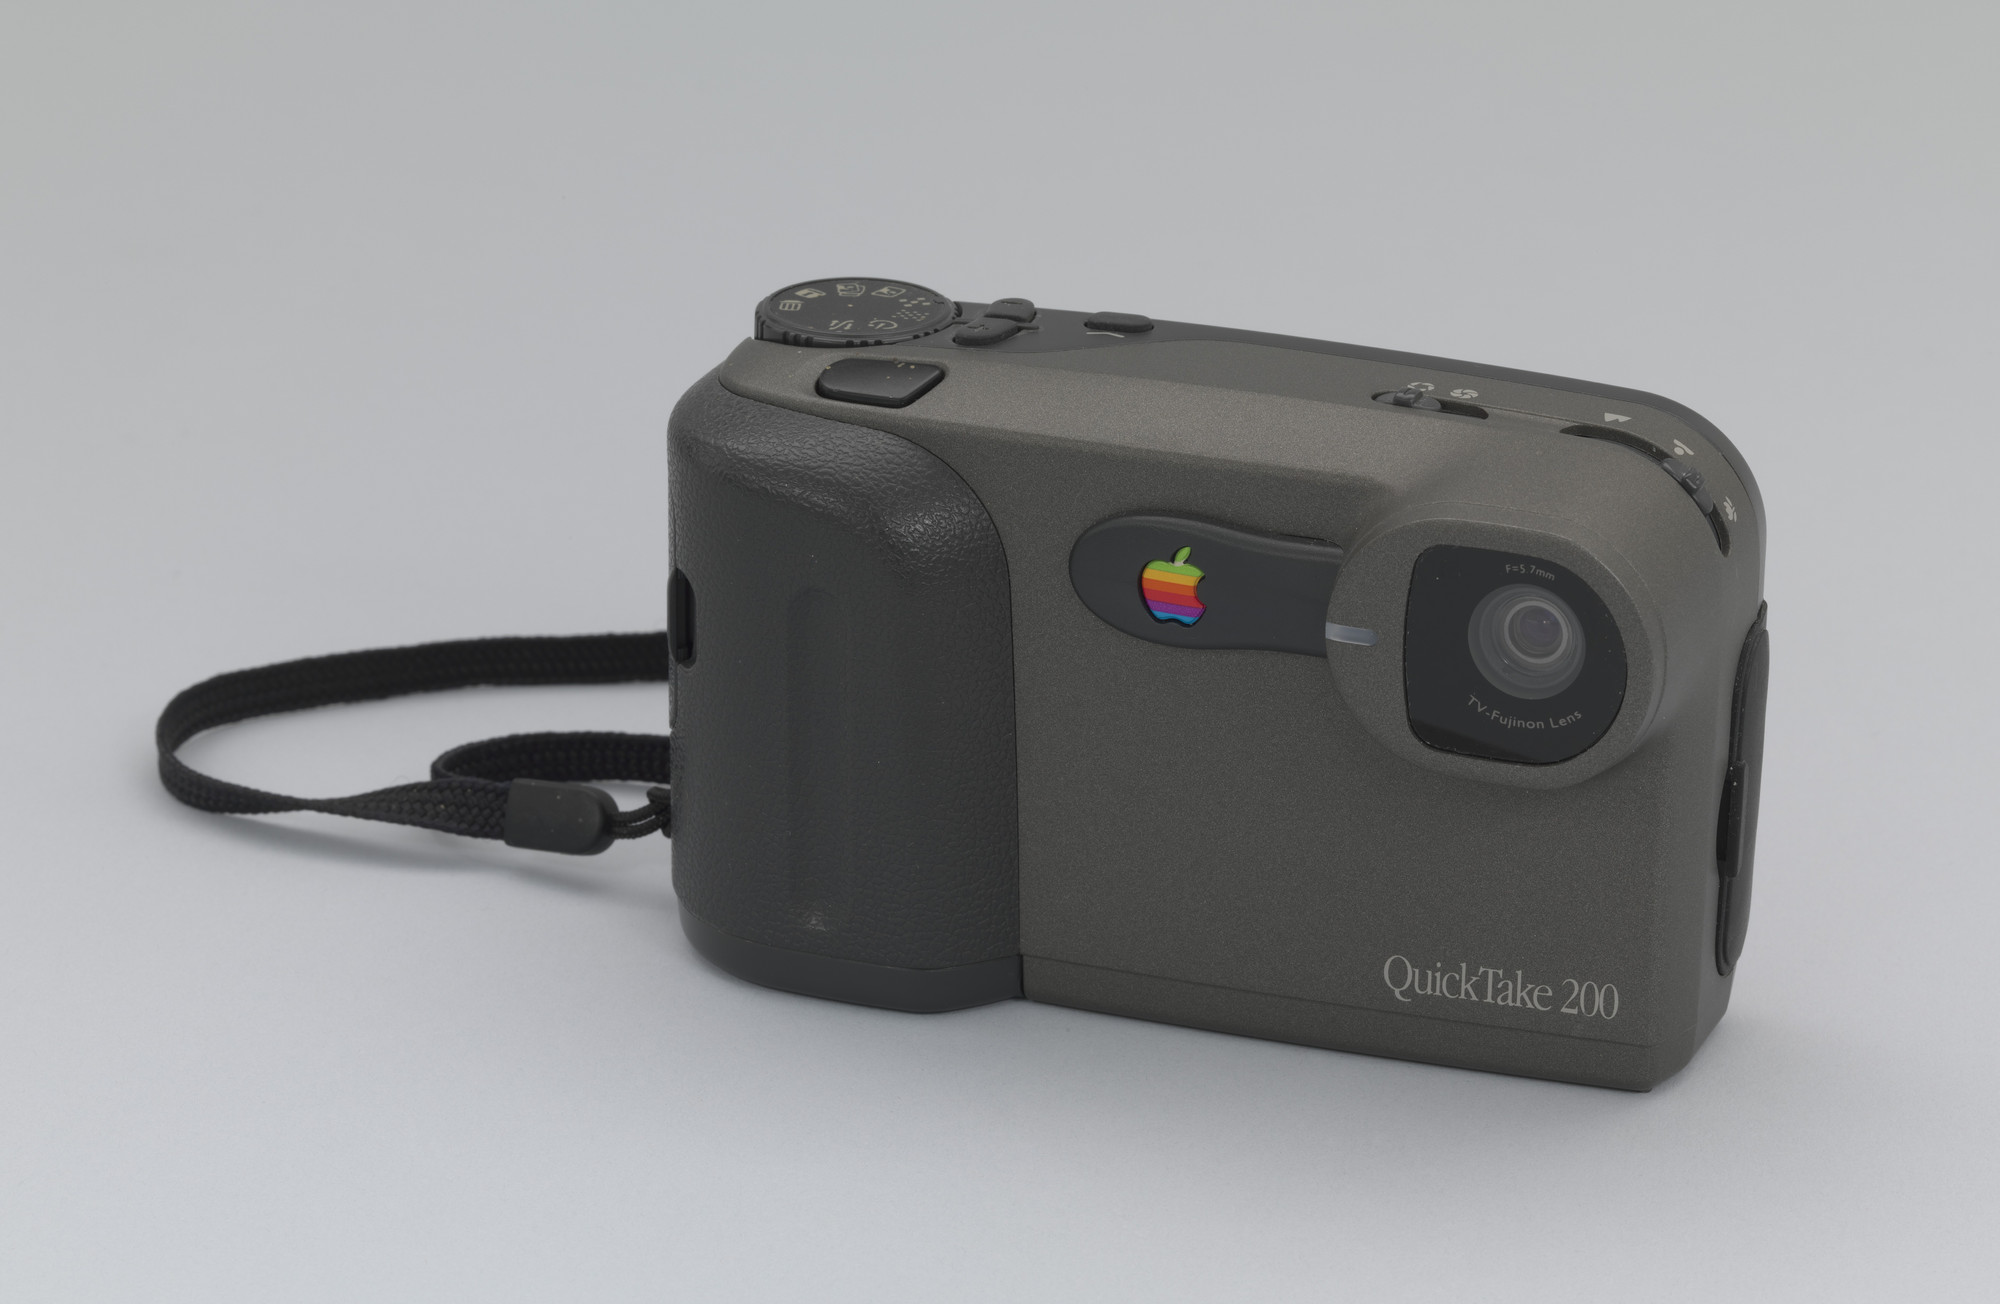 Apple, Inc.. Quick Take 200 Digital Camera. 1996